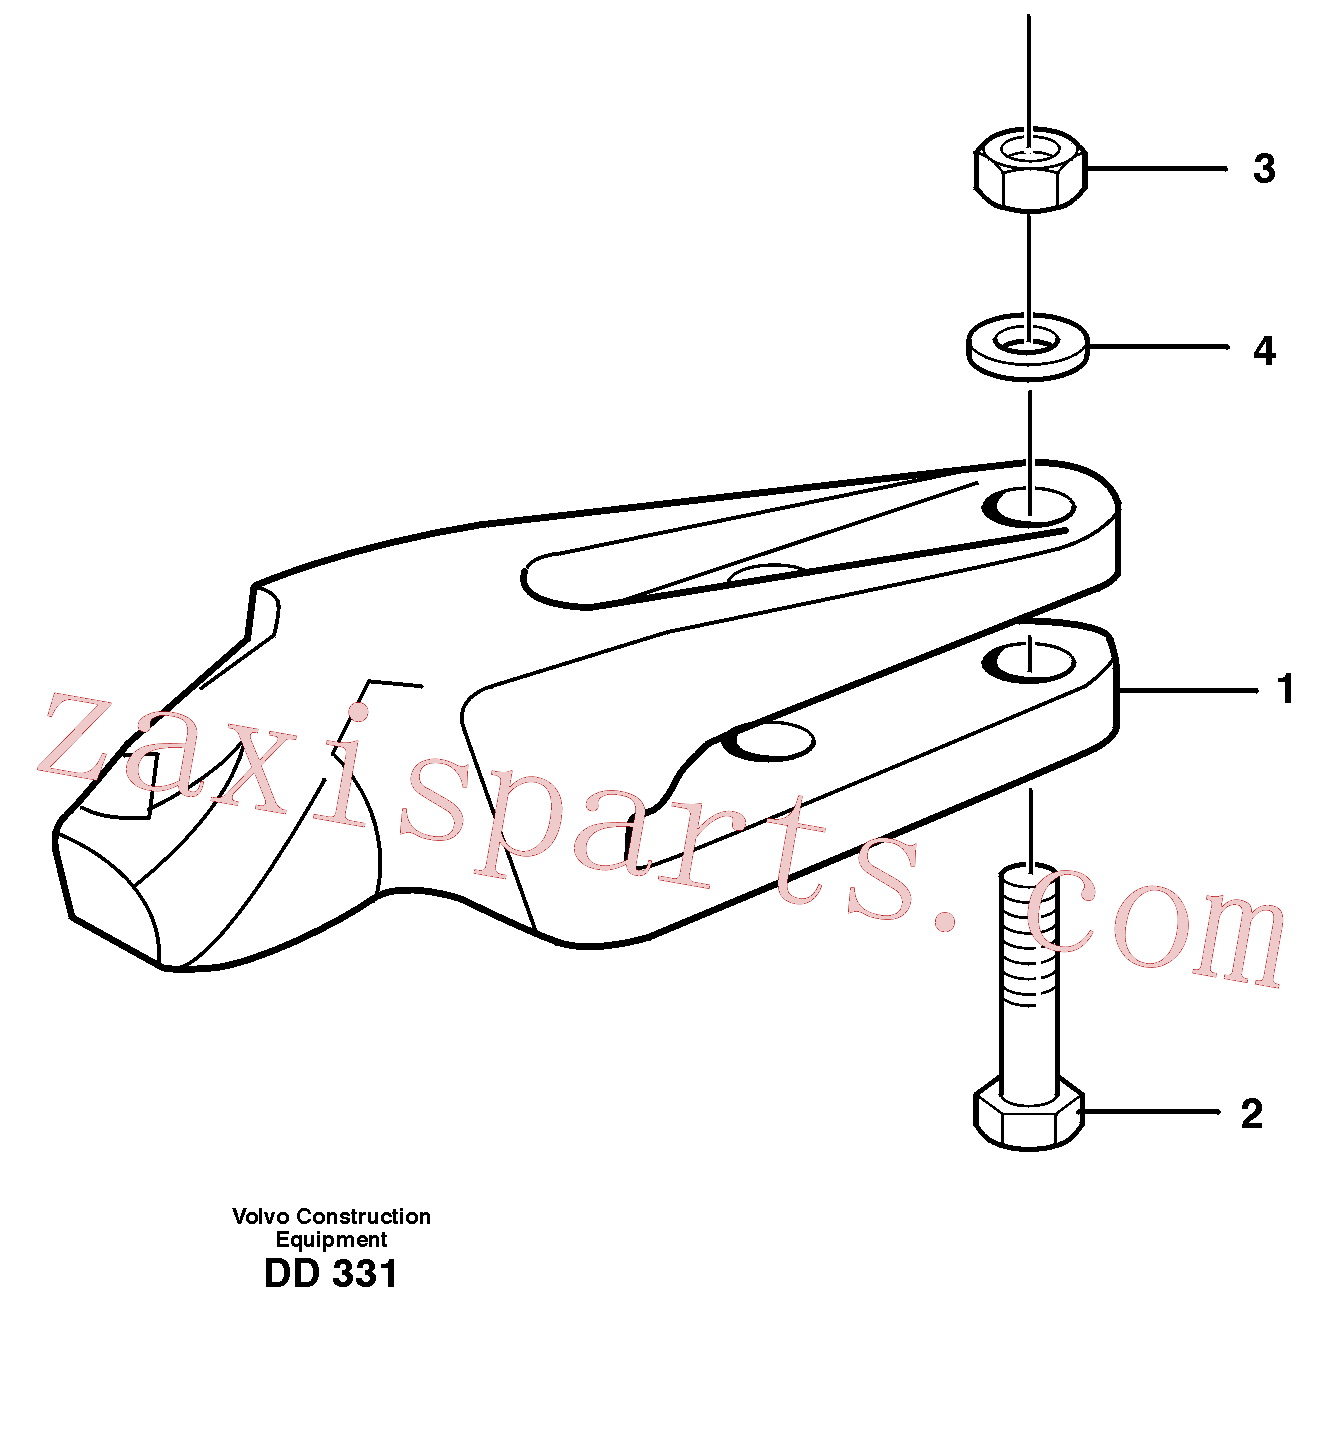 VOE978951 for Volvo Adapter kit(DD331 assembly)